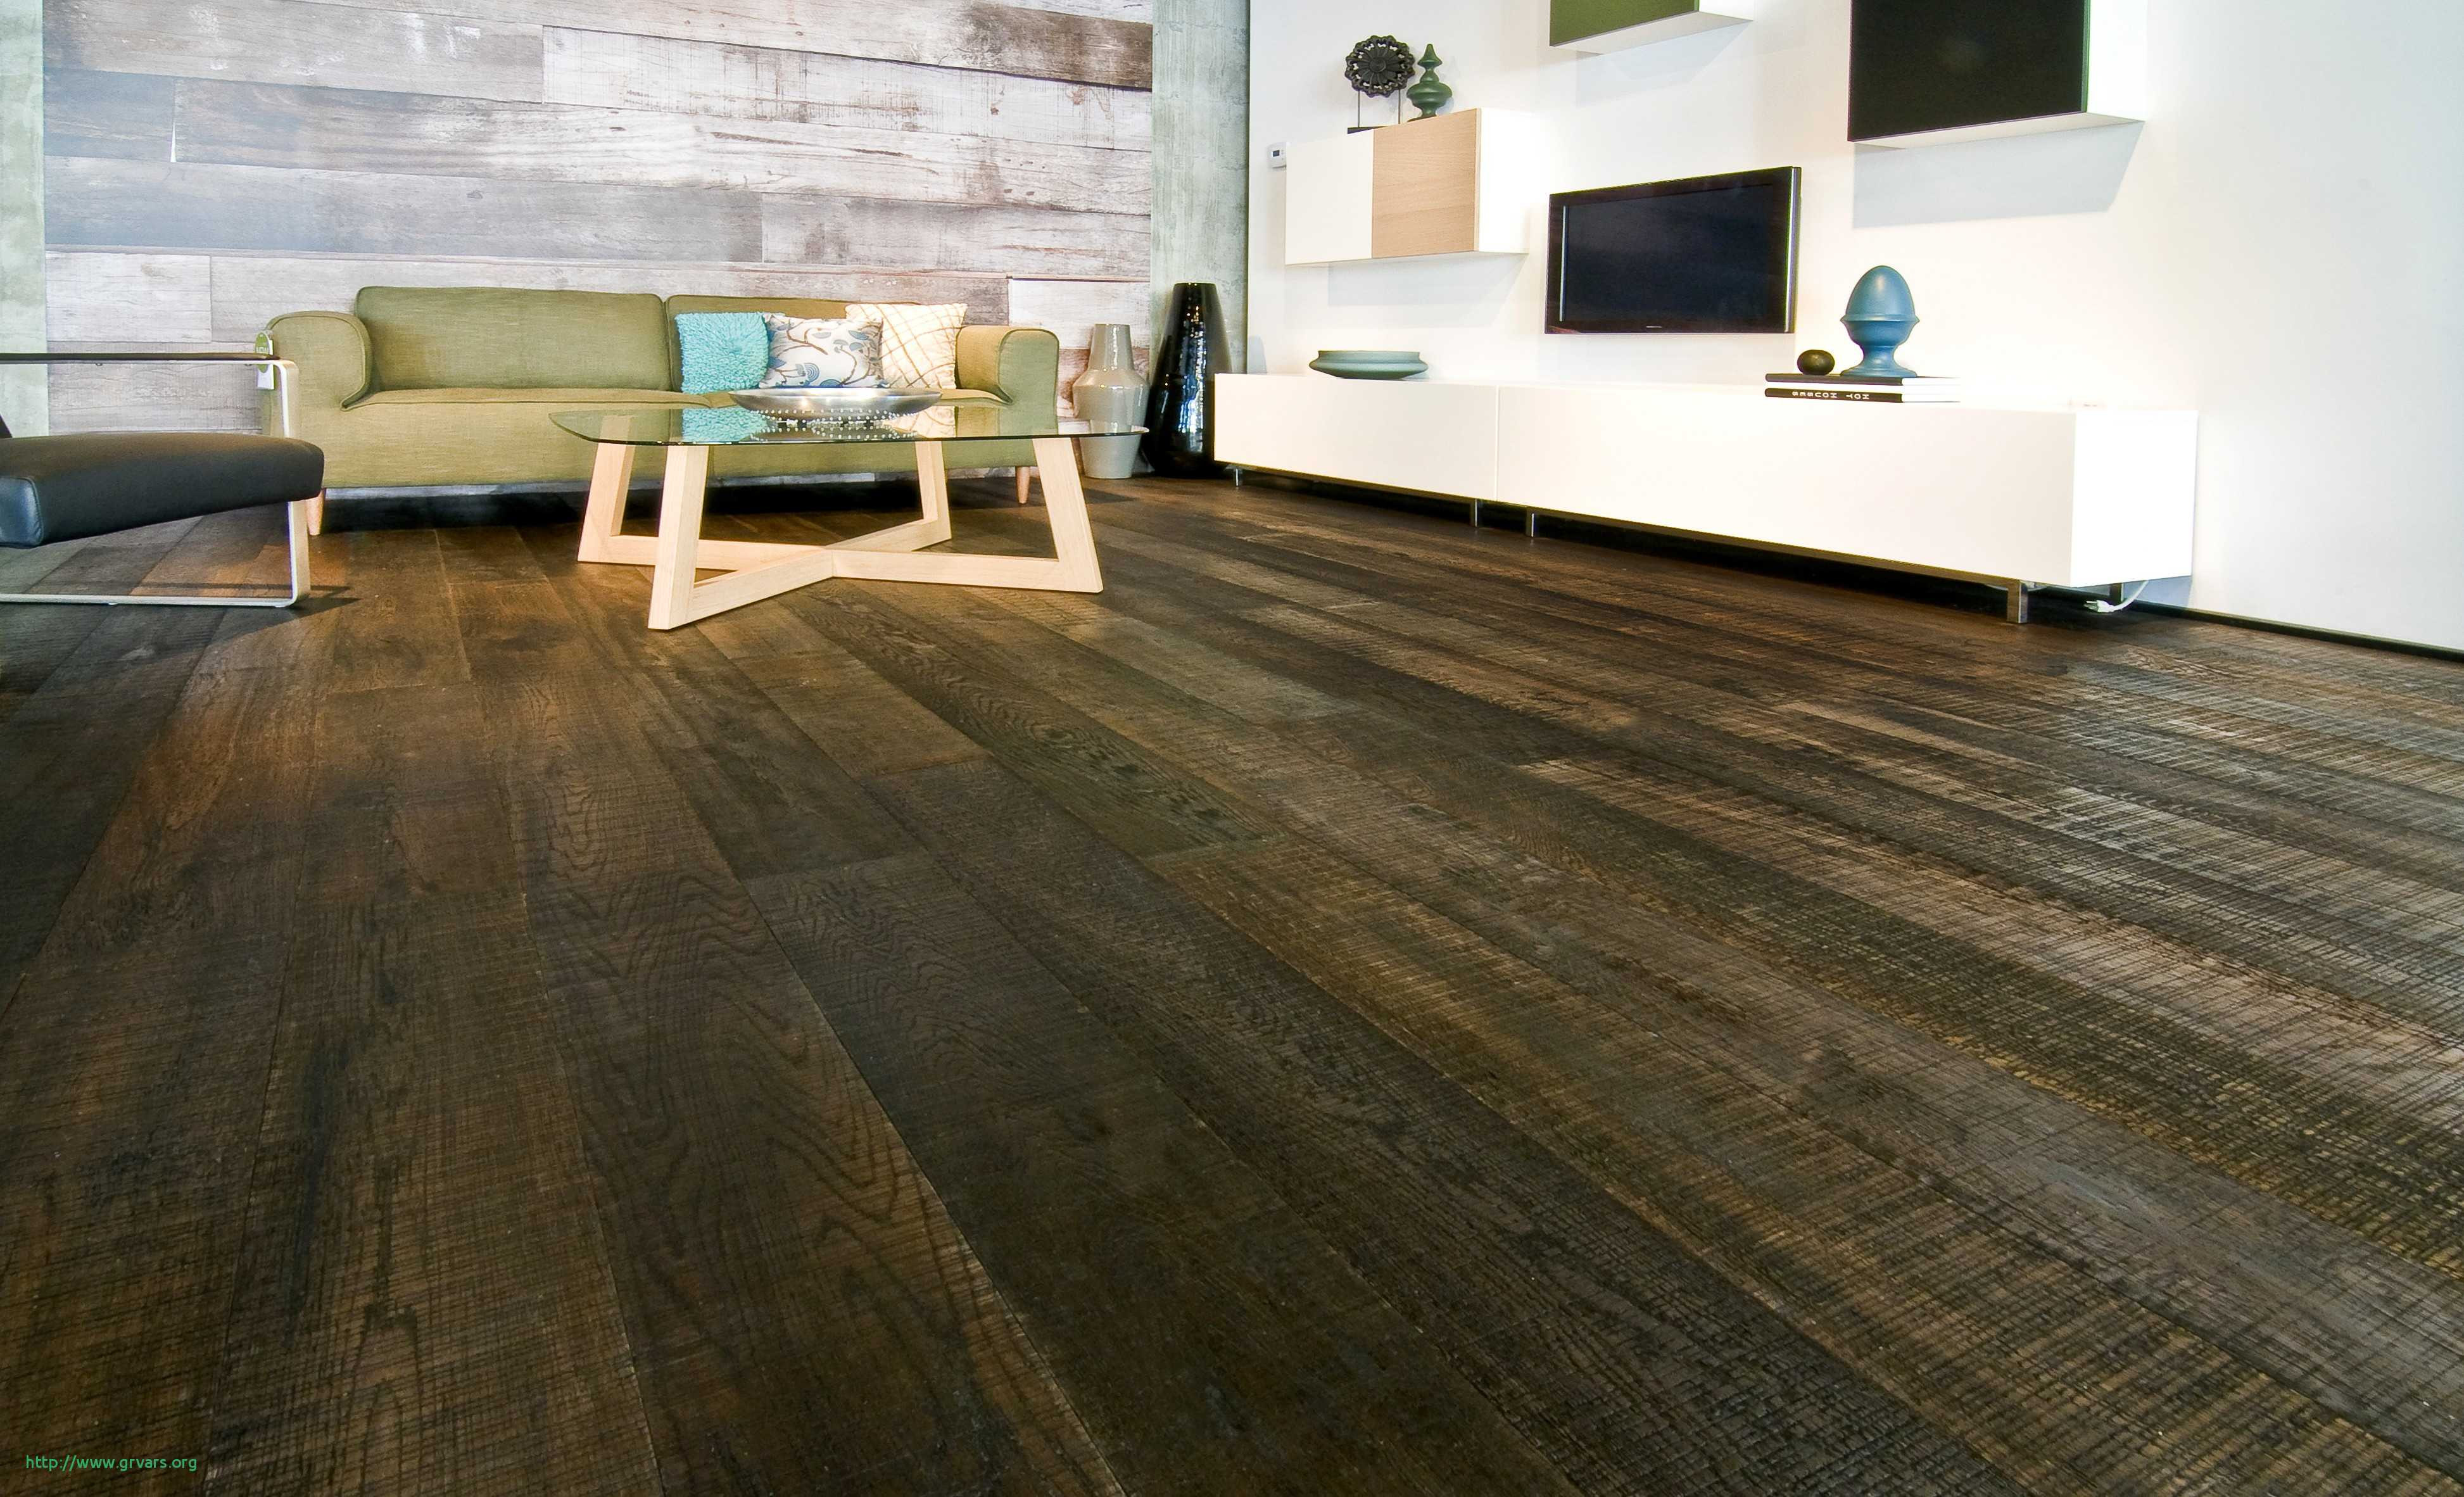 shaw hardwood flooring canada of 17 meilleur de hardwood floor installers toronto ideas blog within full size of bedroom engaging discount hardwood flooring 5 where to buy inspirational 0d grace place